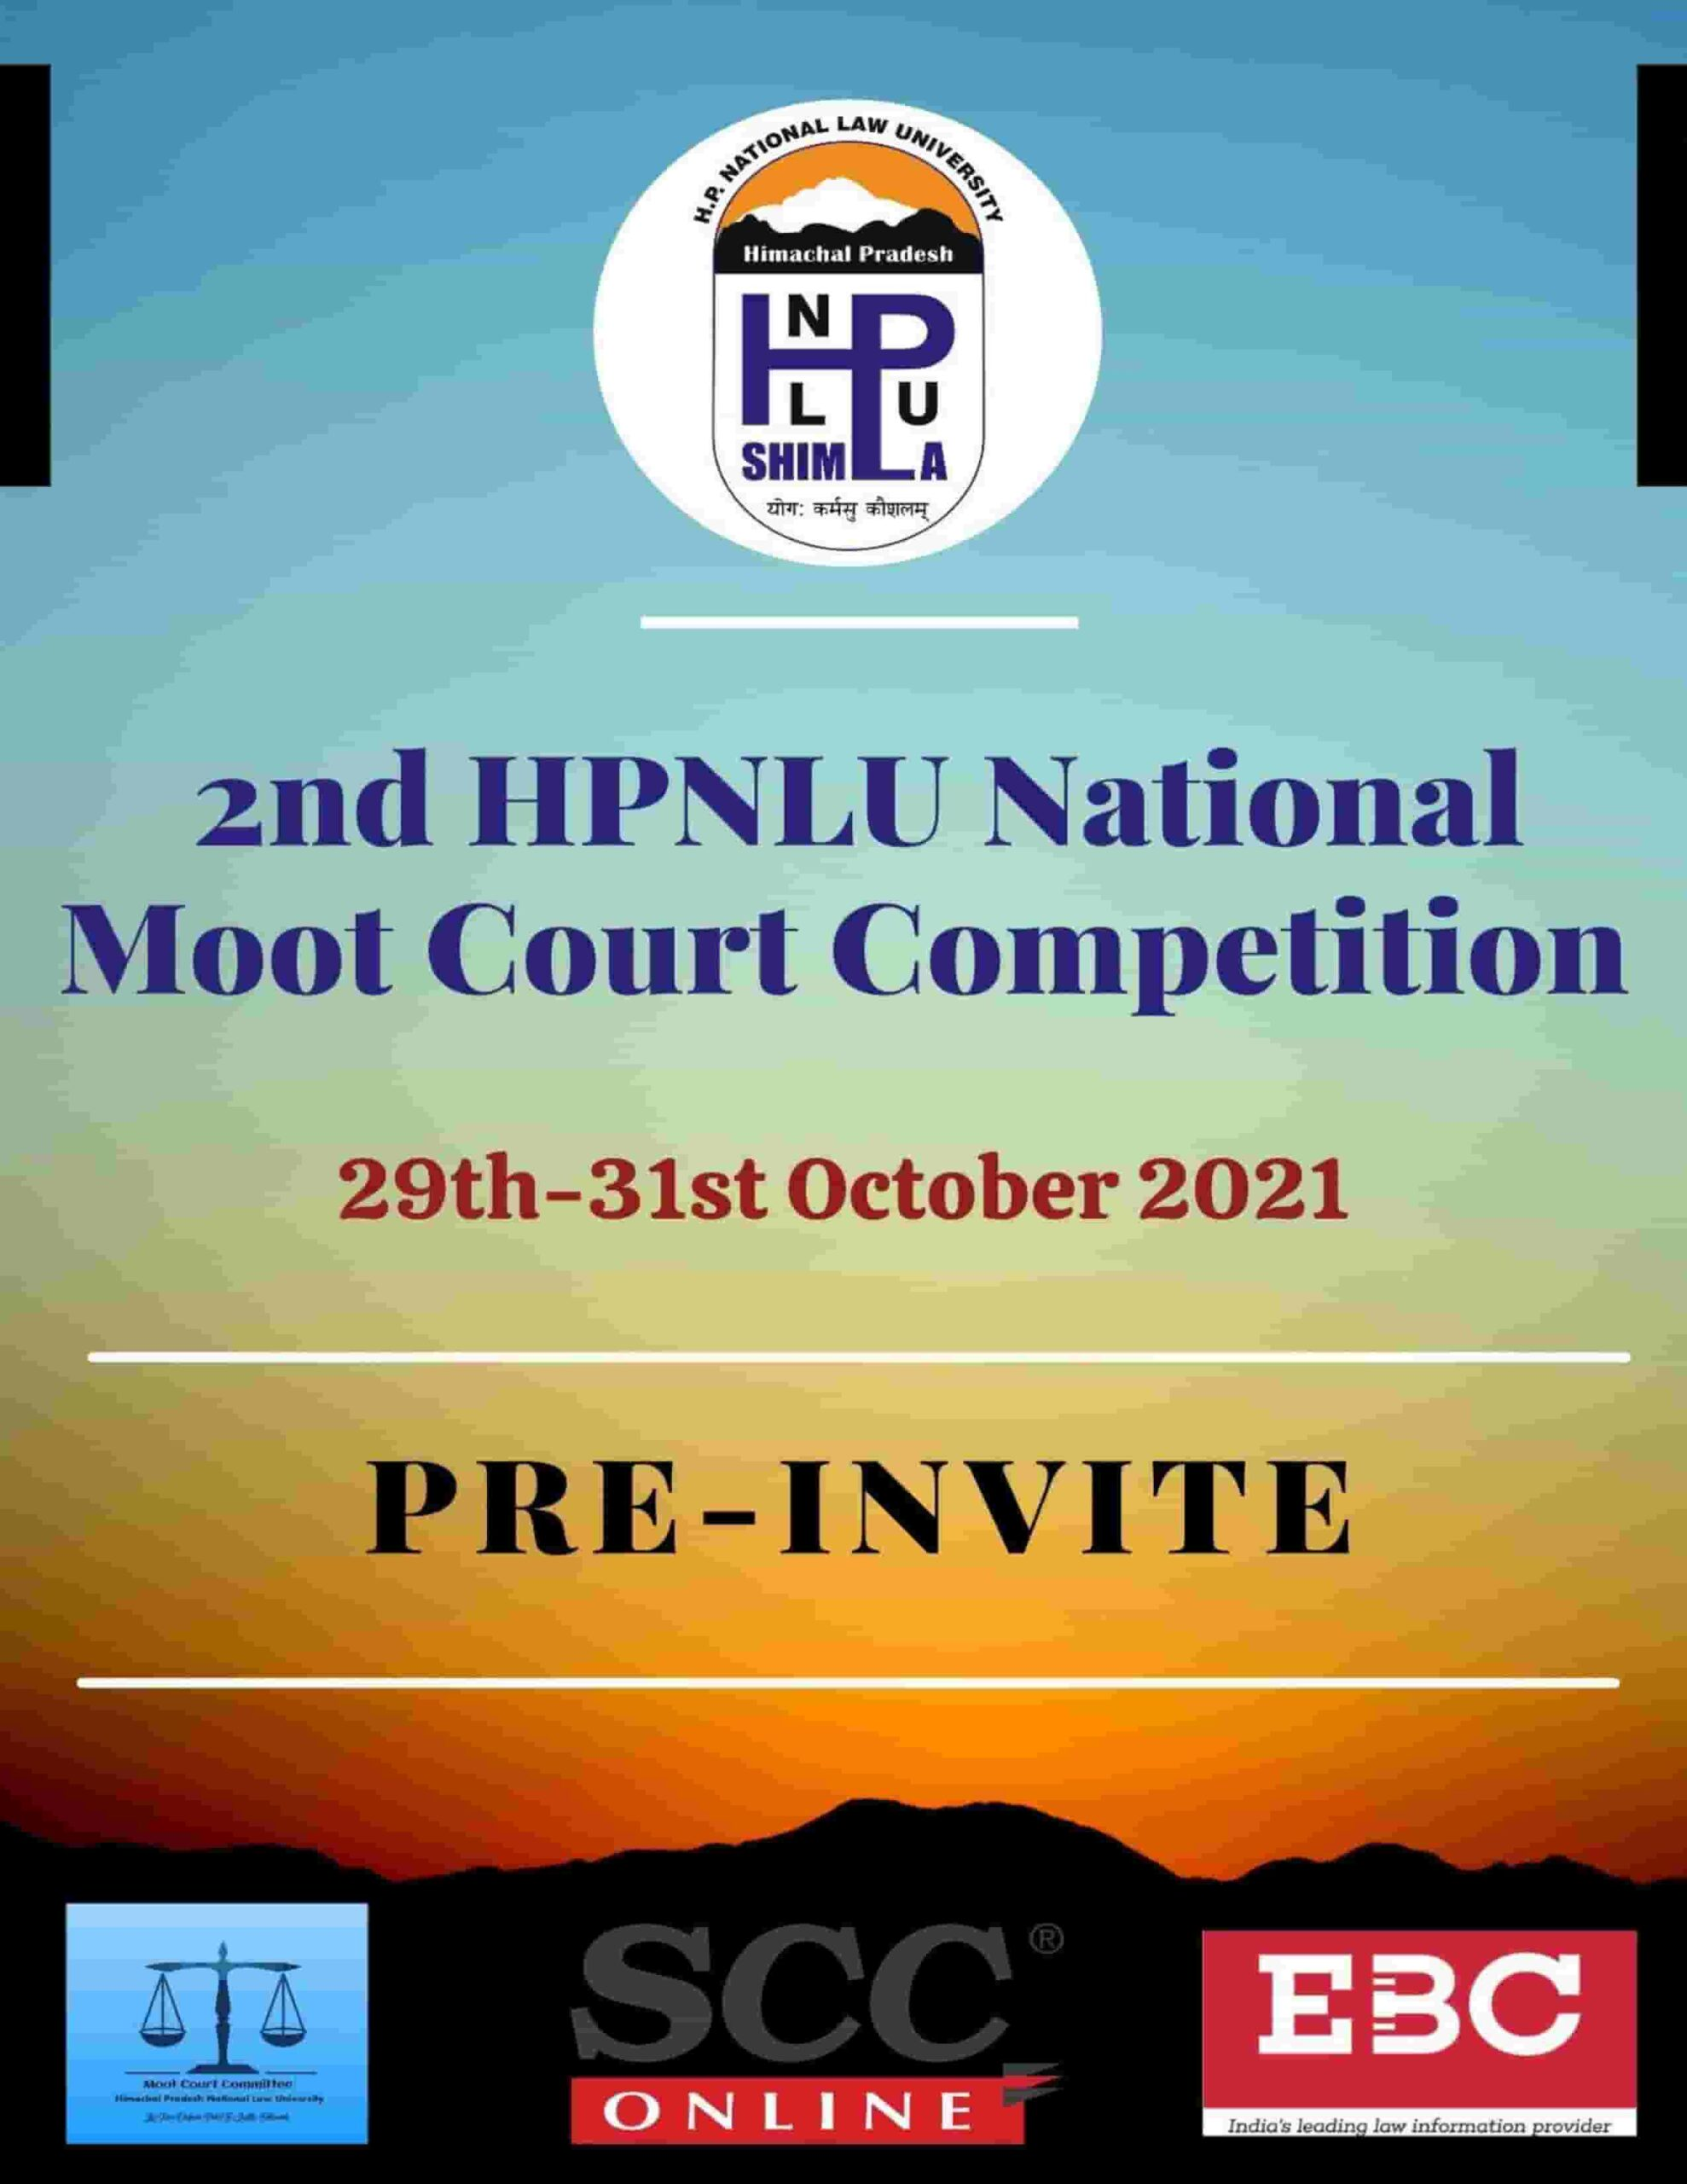 HPNLU National Moot Court Competition [October 29-31, 2020]: Registrations Open